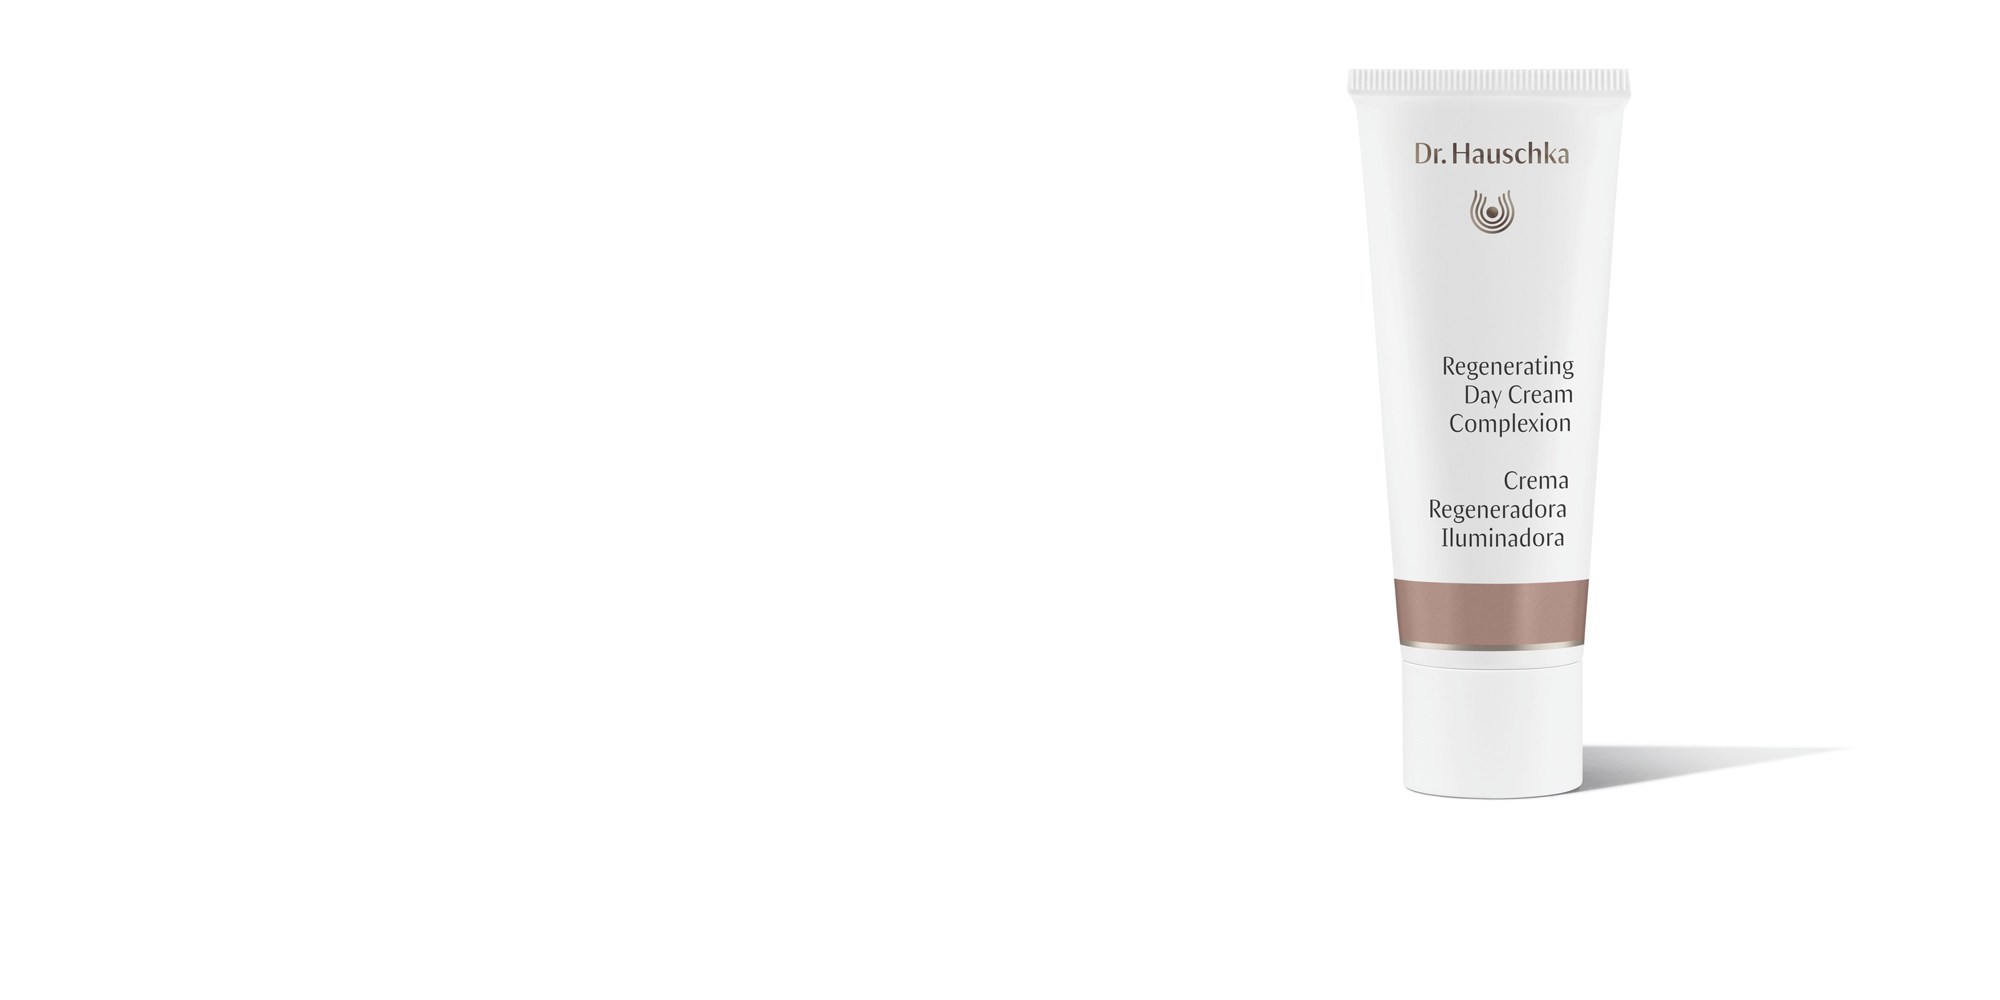 Anti aging cream & anti wrinkle treatment REGENERATING  day cream complexion Dr. Hauschka